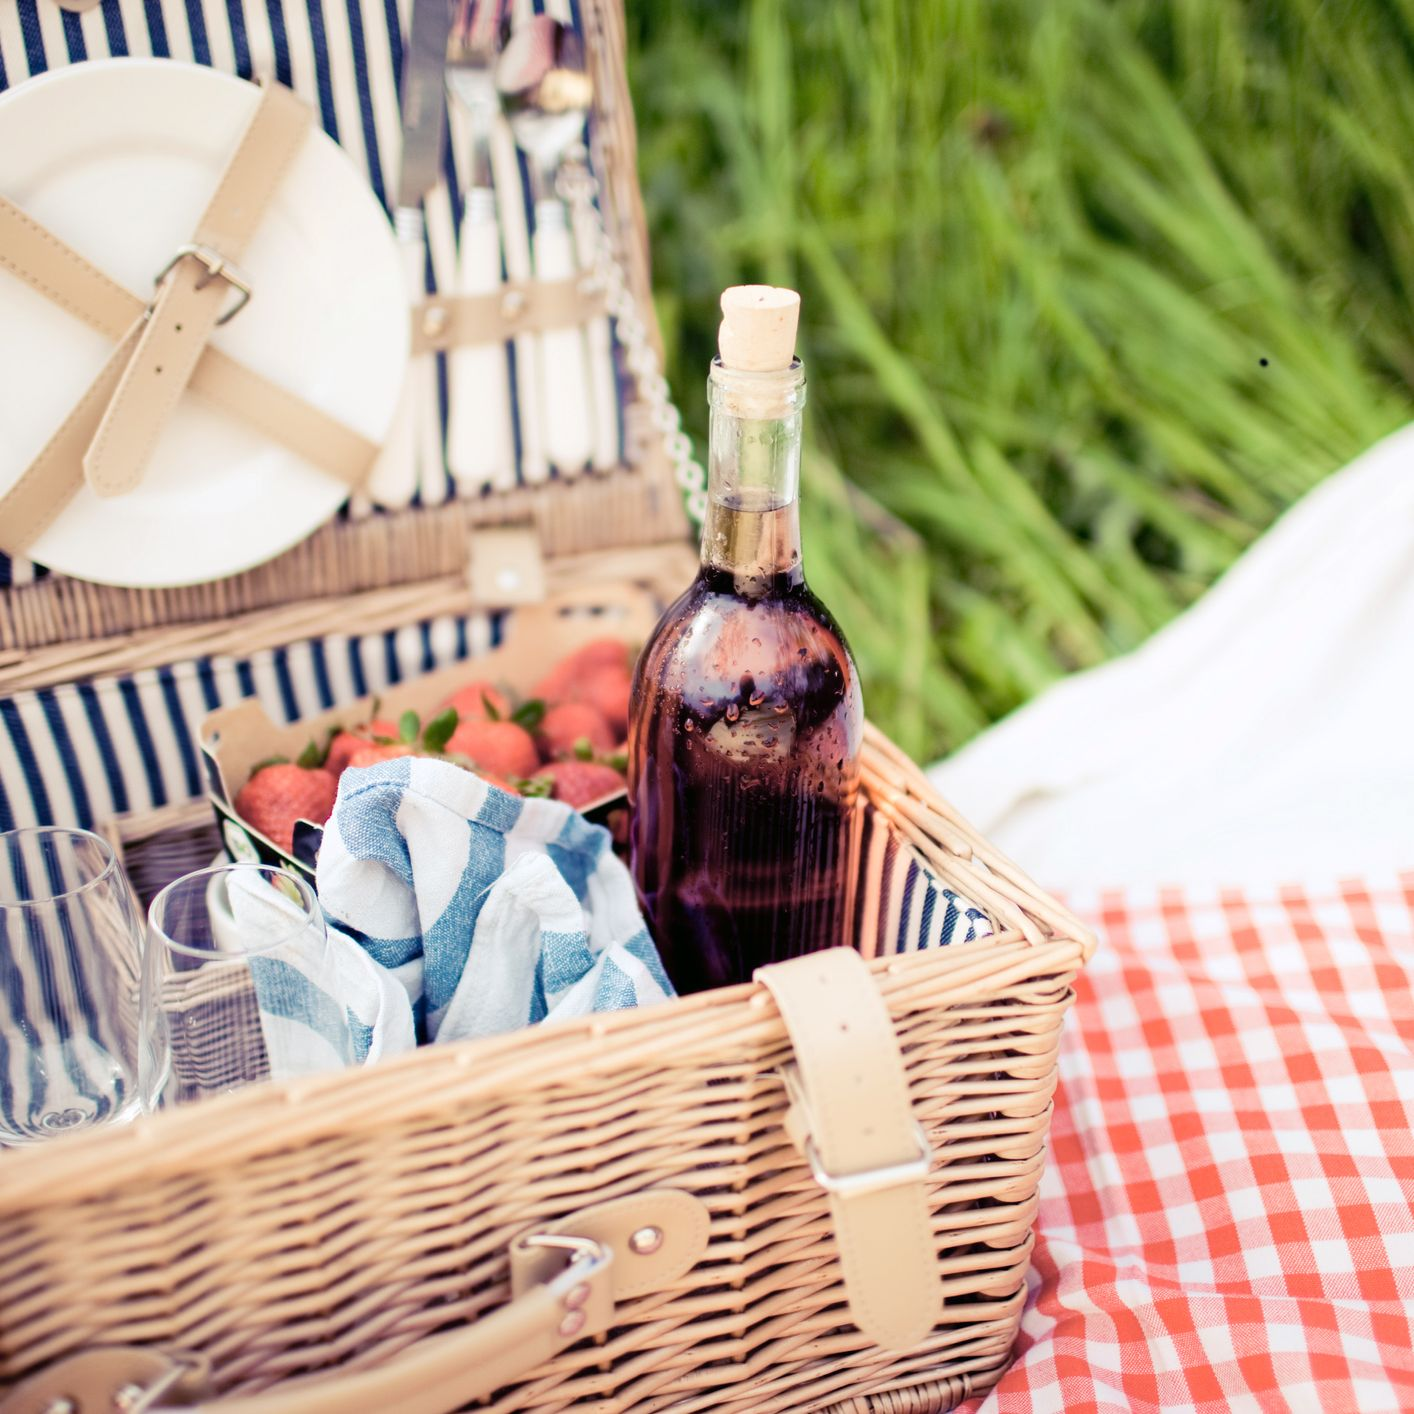 9 of the best picnic baskets and hampers